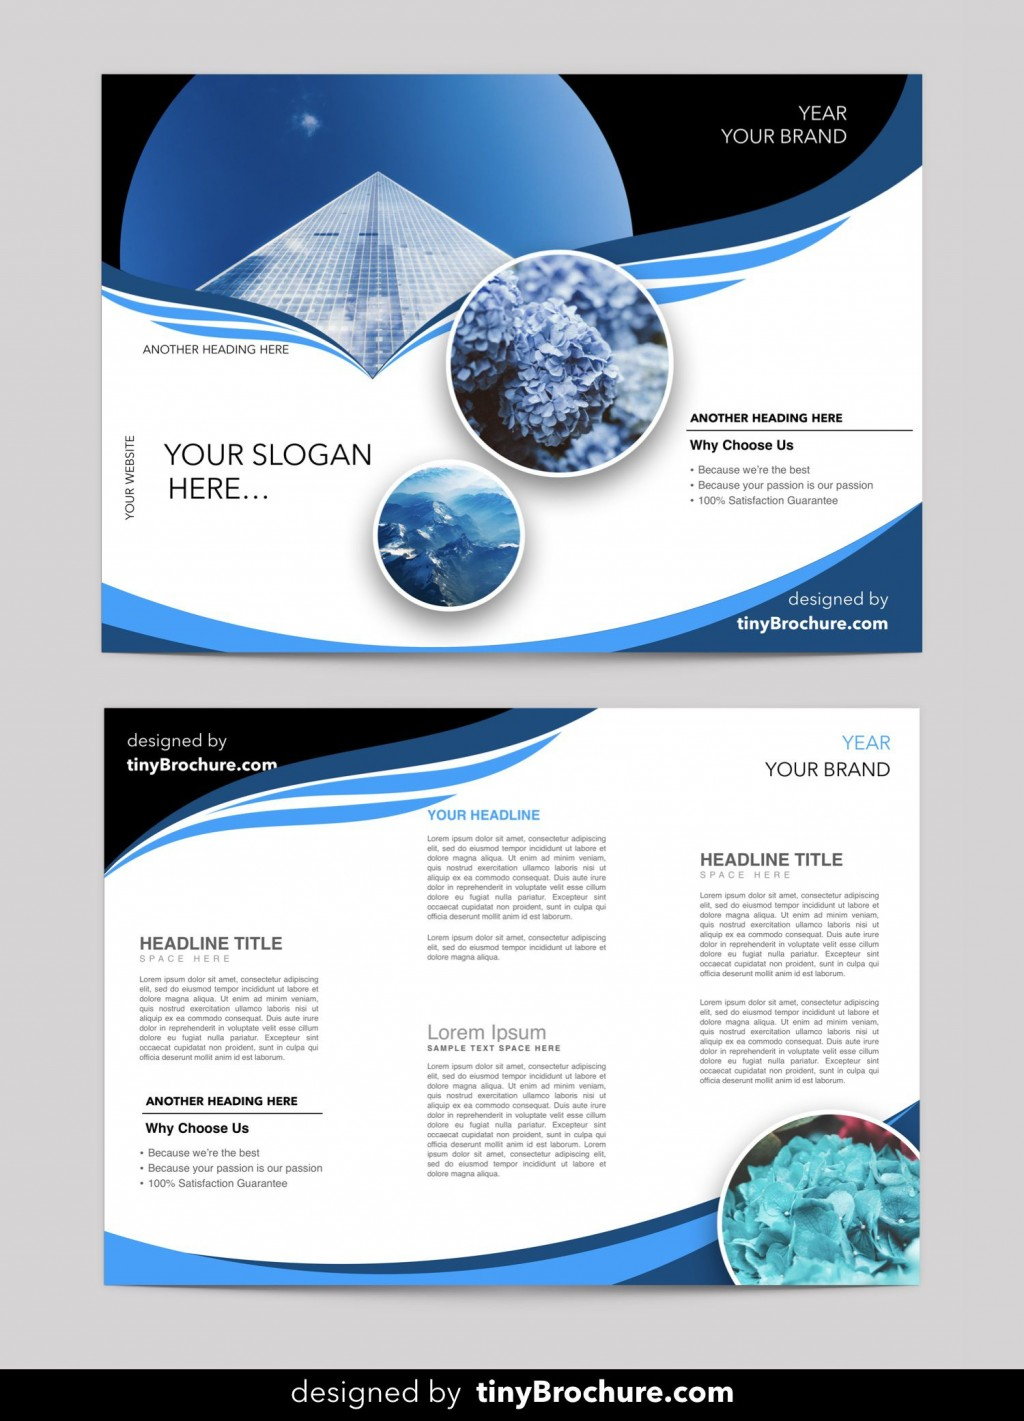 004 Rare Free Download Flyer Template High Definition  Photoshop For Microsoft Word Downloadable PublisherLarge